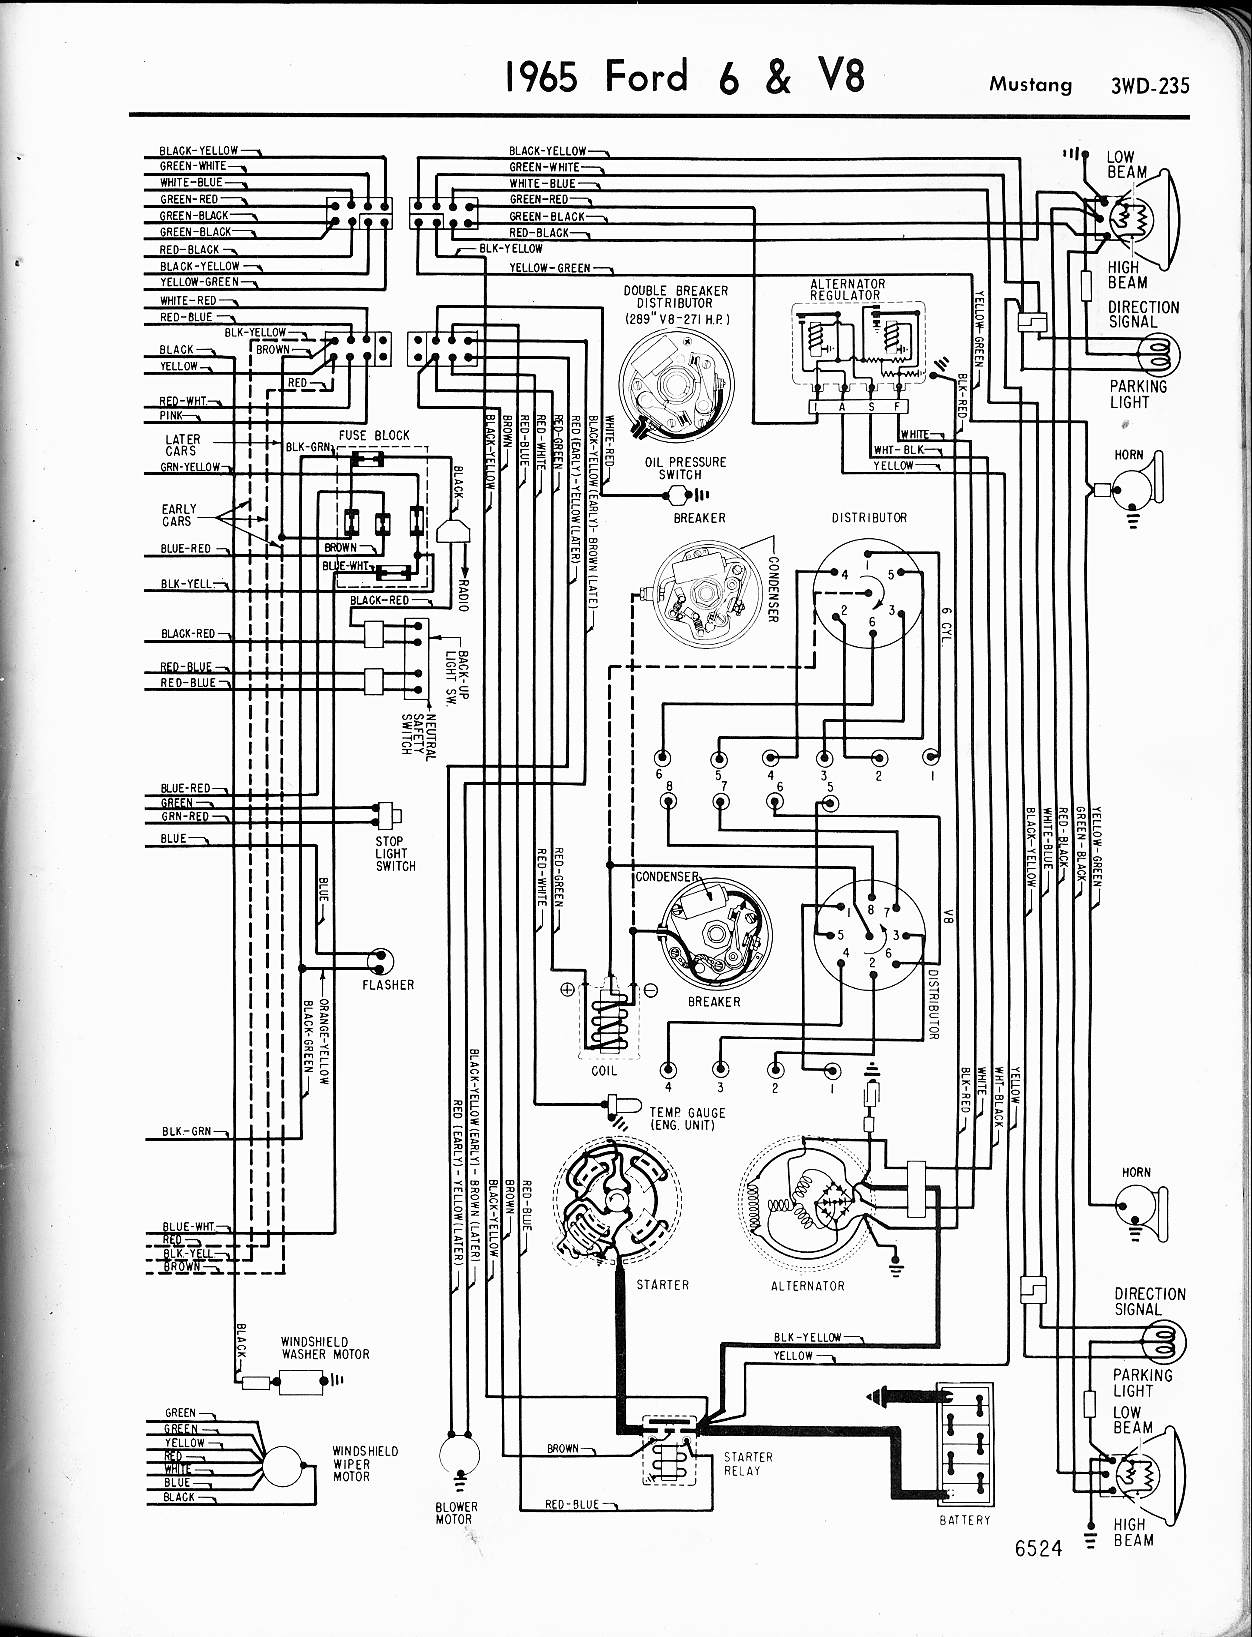 Exelent Obd0 To Obd1 Conversion Harness Wiring Diagram Gift - The ...